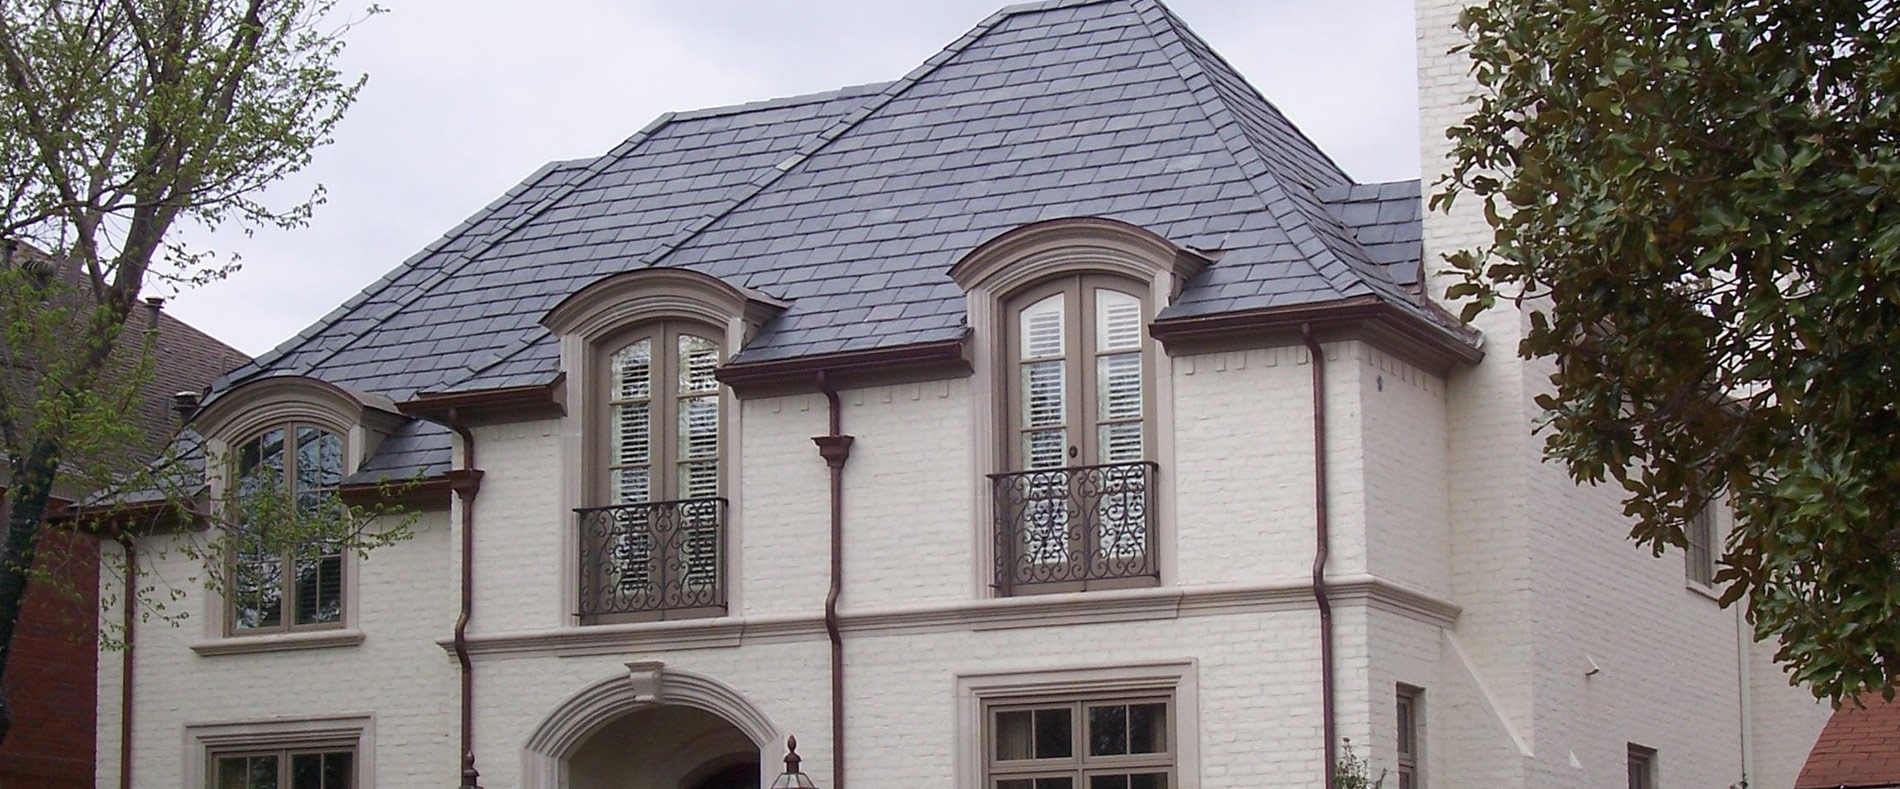 Tile Roofing Plano The Woodlands Tx Trident General